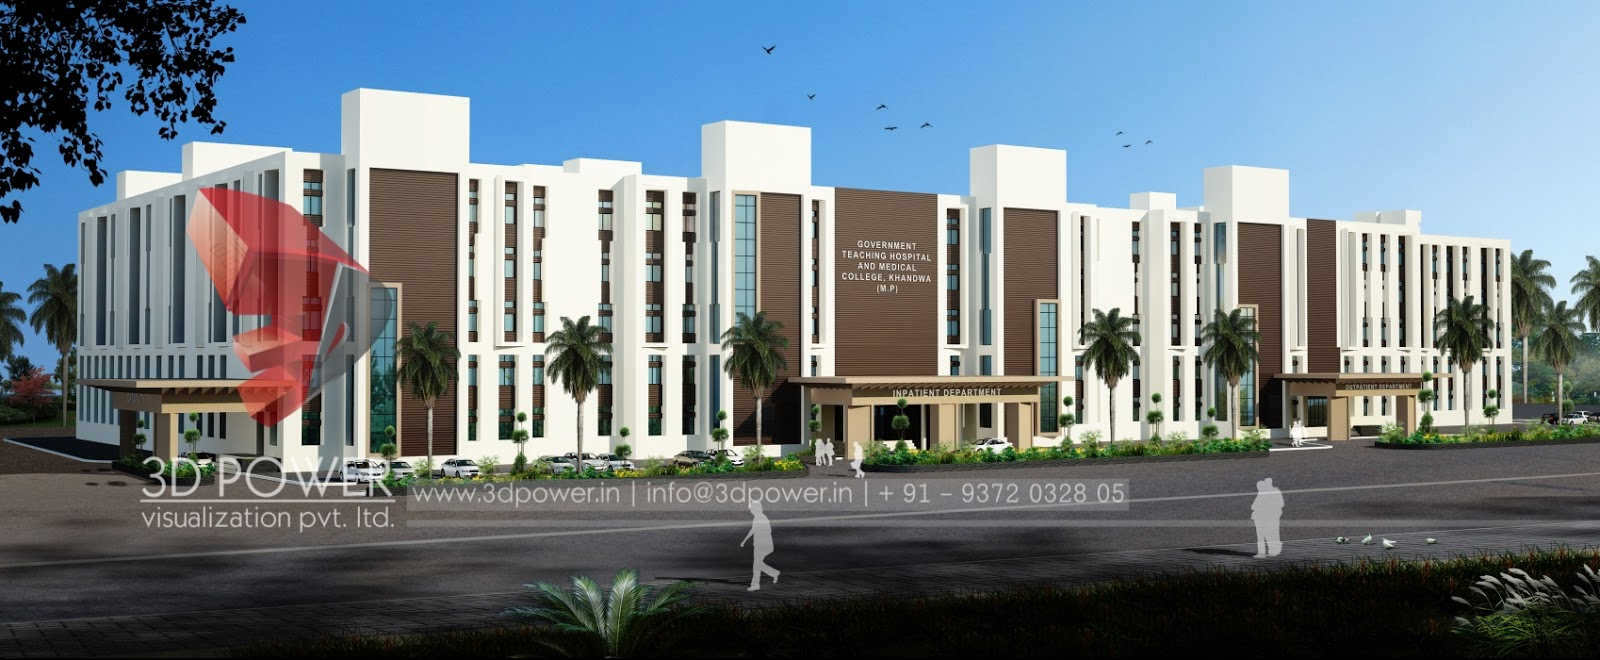 Home Design 3d Rendering Services on Medical Office Building Floor Plans